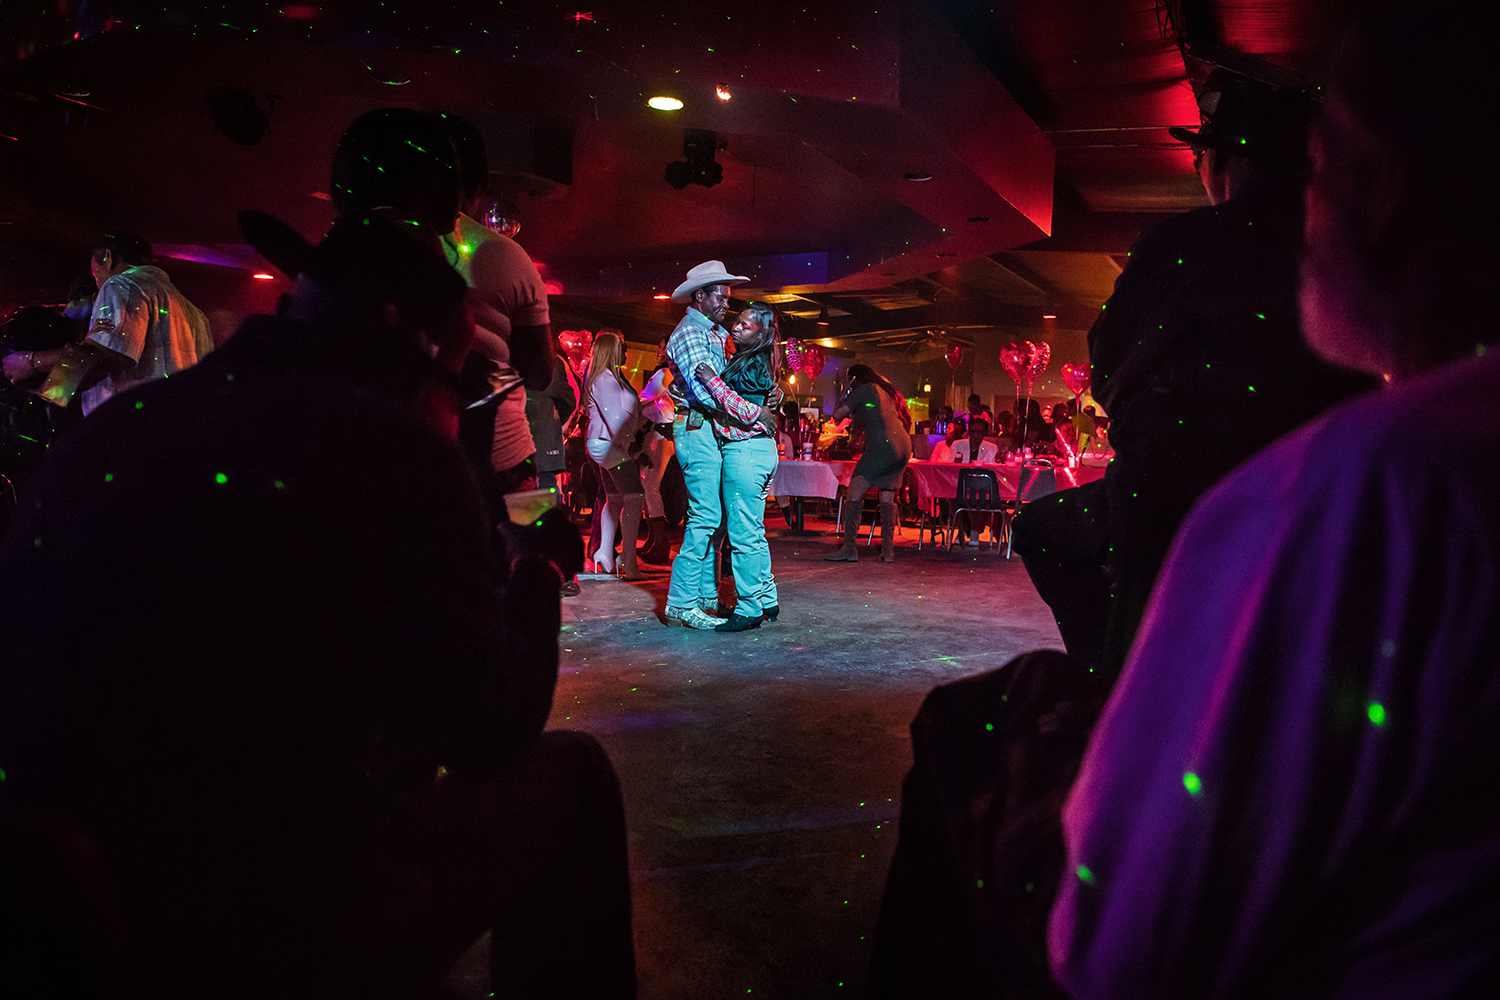 """Joe """"Dancing Cowboy"""" Wrenn and his wife Barbara take the floor at a Valentine's Day dance at Club Black Castle in Ruleville, Mississippi. Photo by Rory Doyle."""